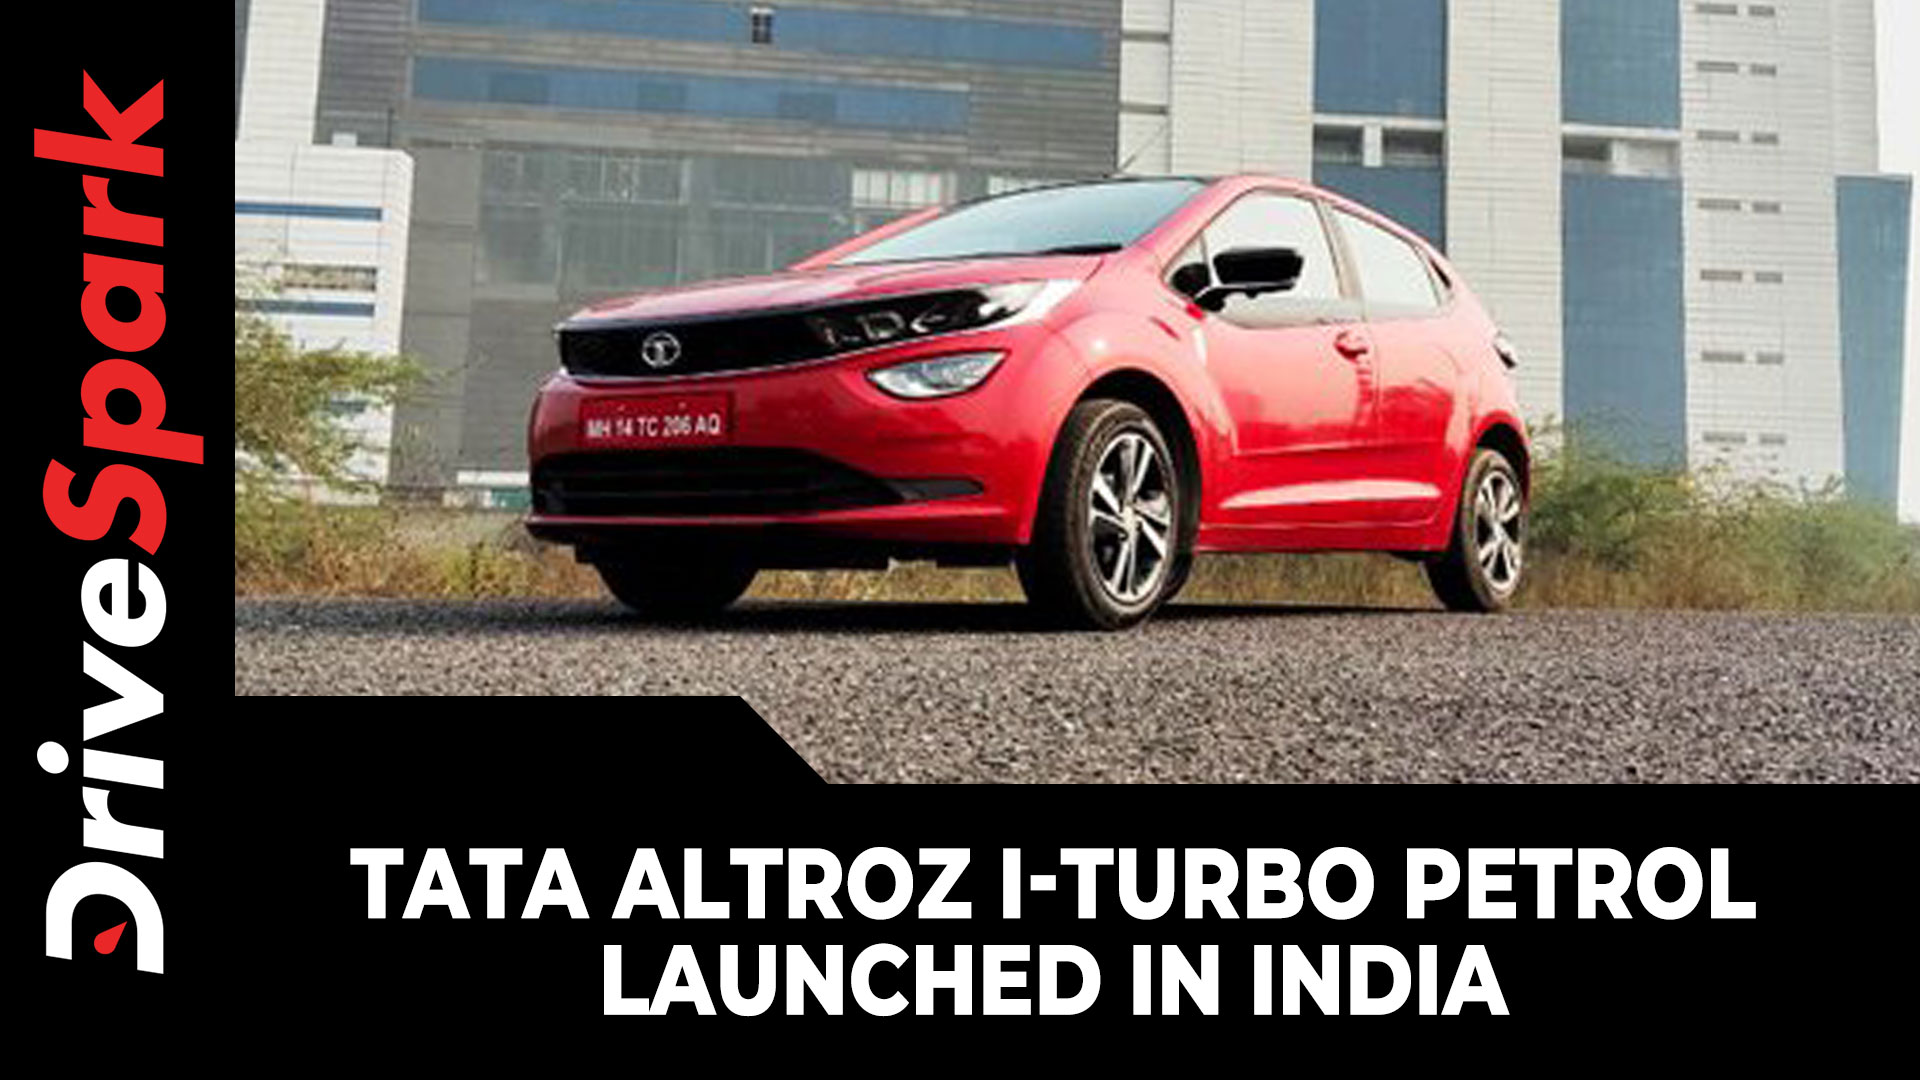 Tata Altroz i-Turbo Petrol Launched In India | Price, Variants, Features & Other Details